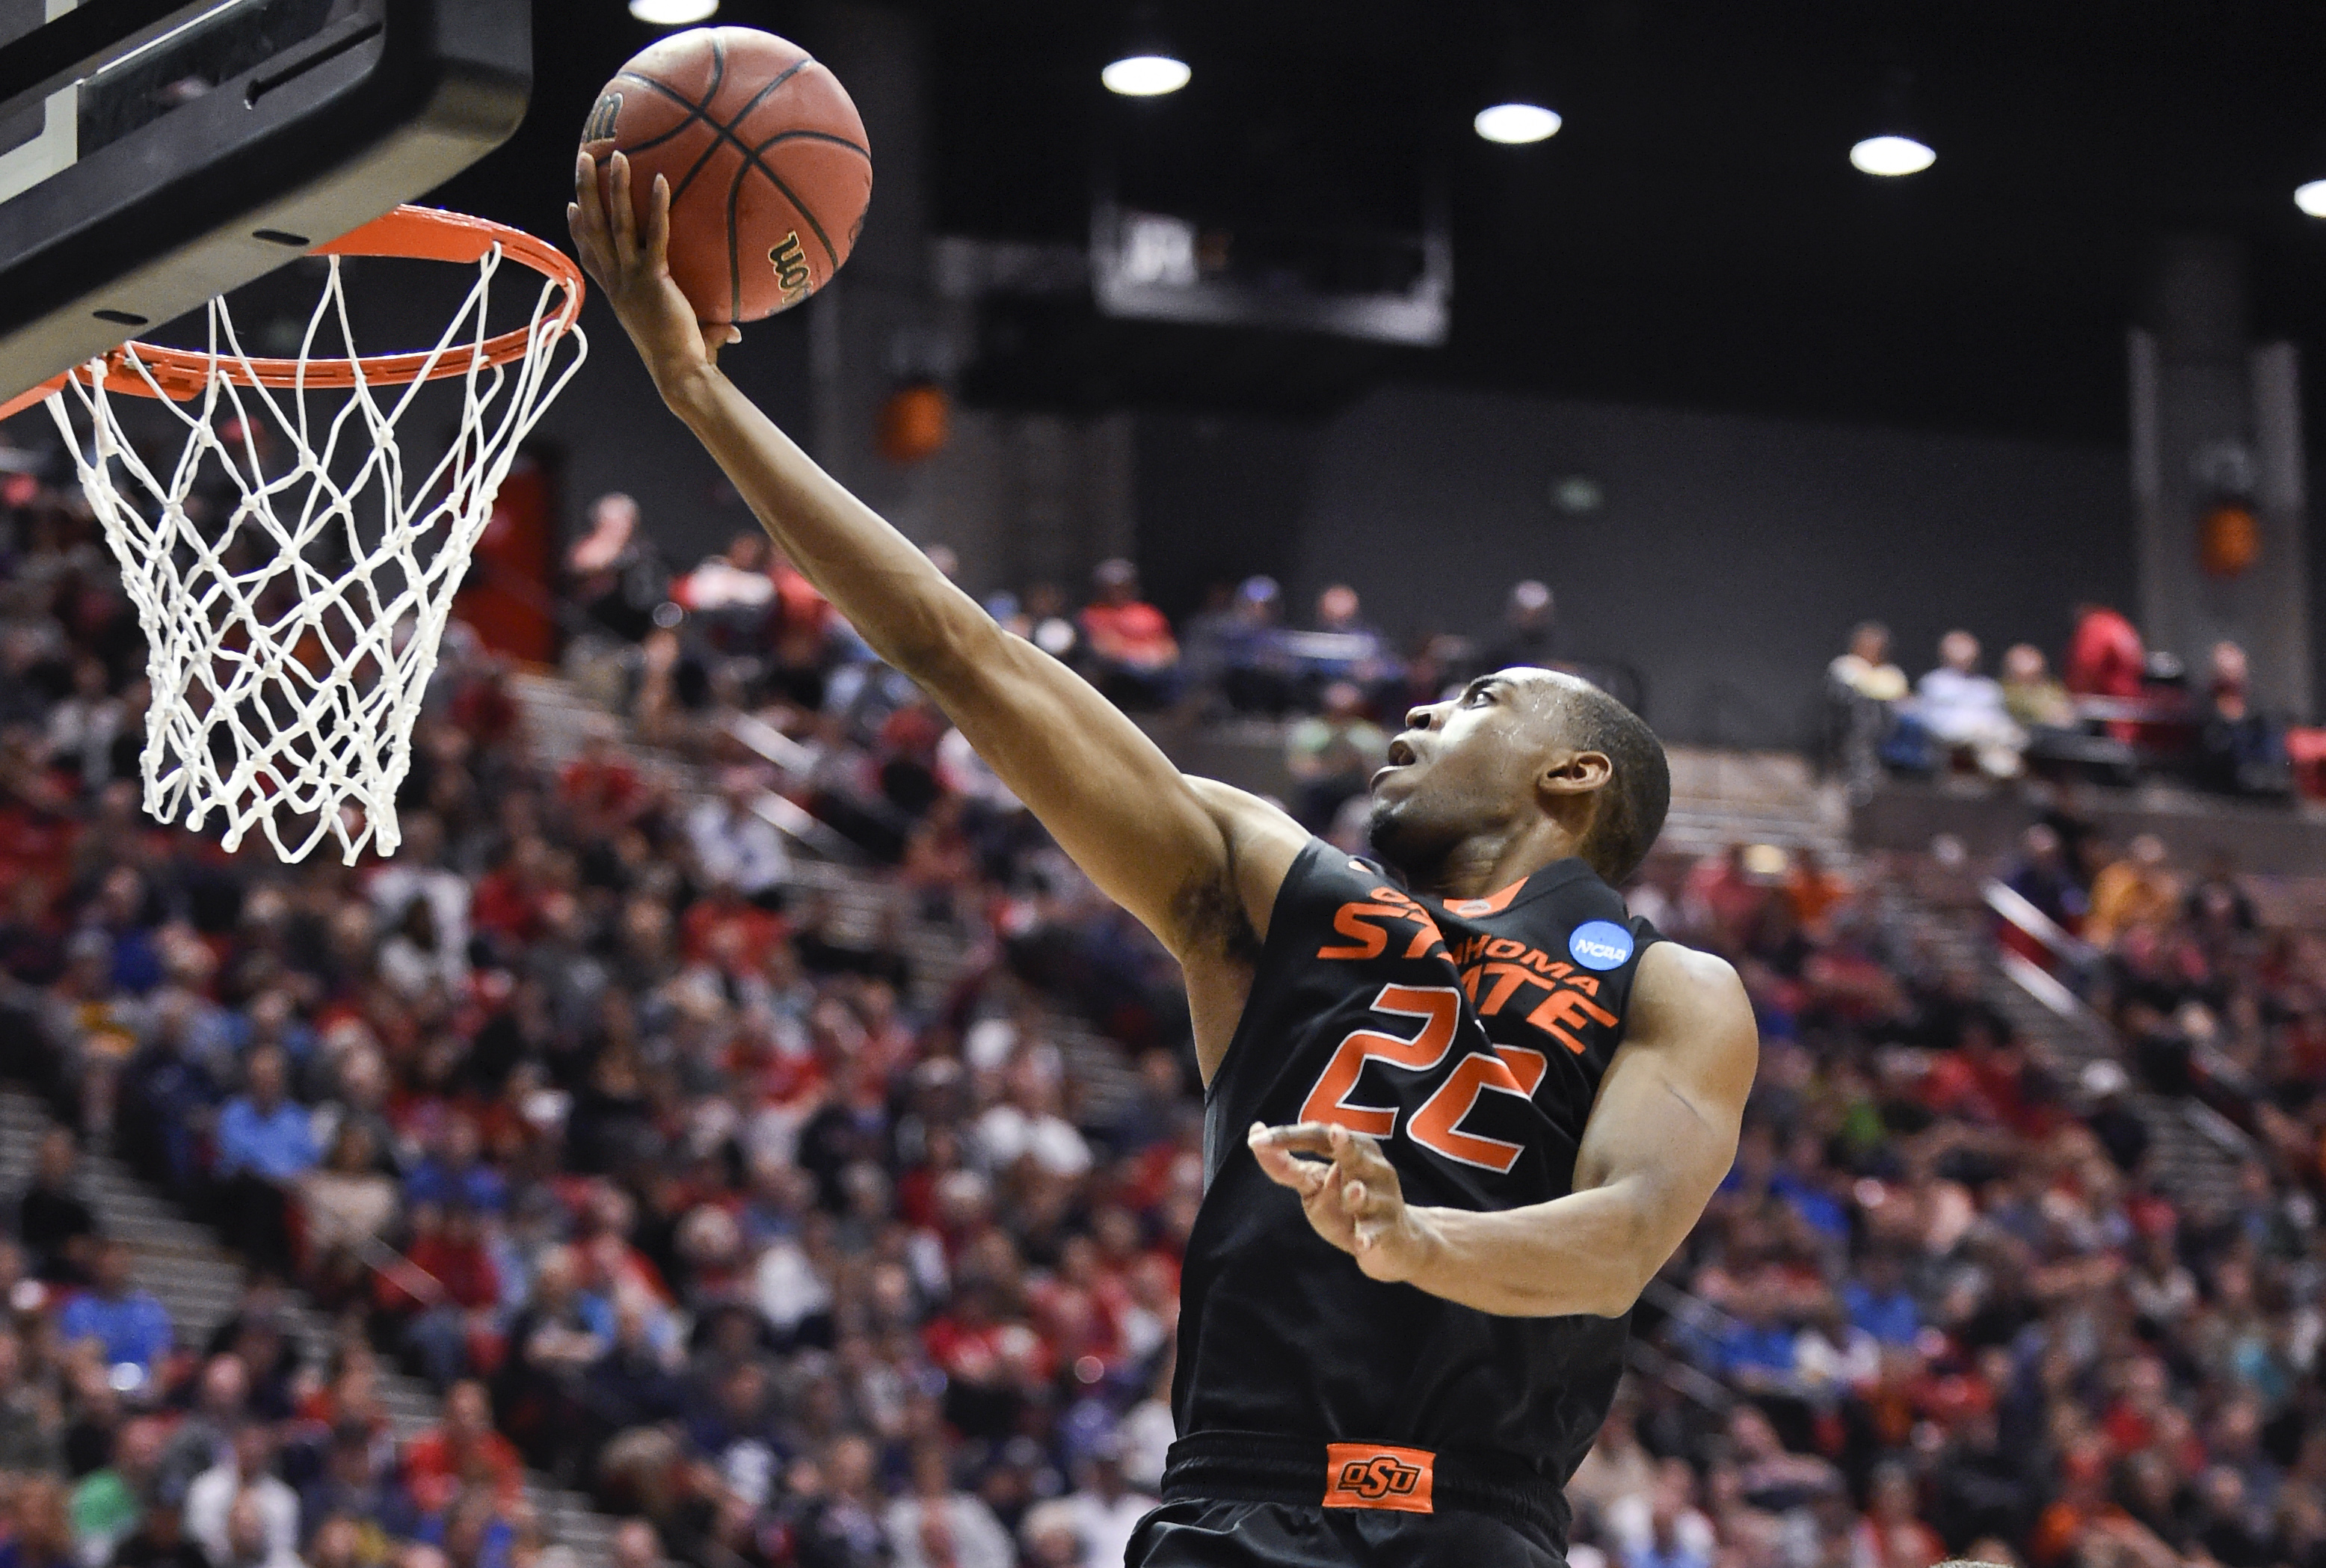 The Oklahoma State senior showed his jumping abilities at the Draft Combine, finishing in first place for the maximum vertical leap and the standing vertical leap and in the top 30 in two other events.